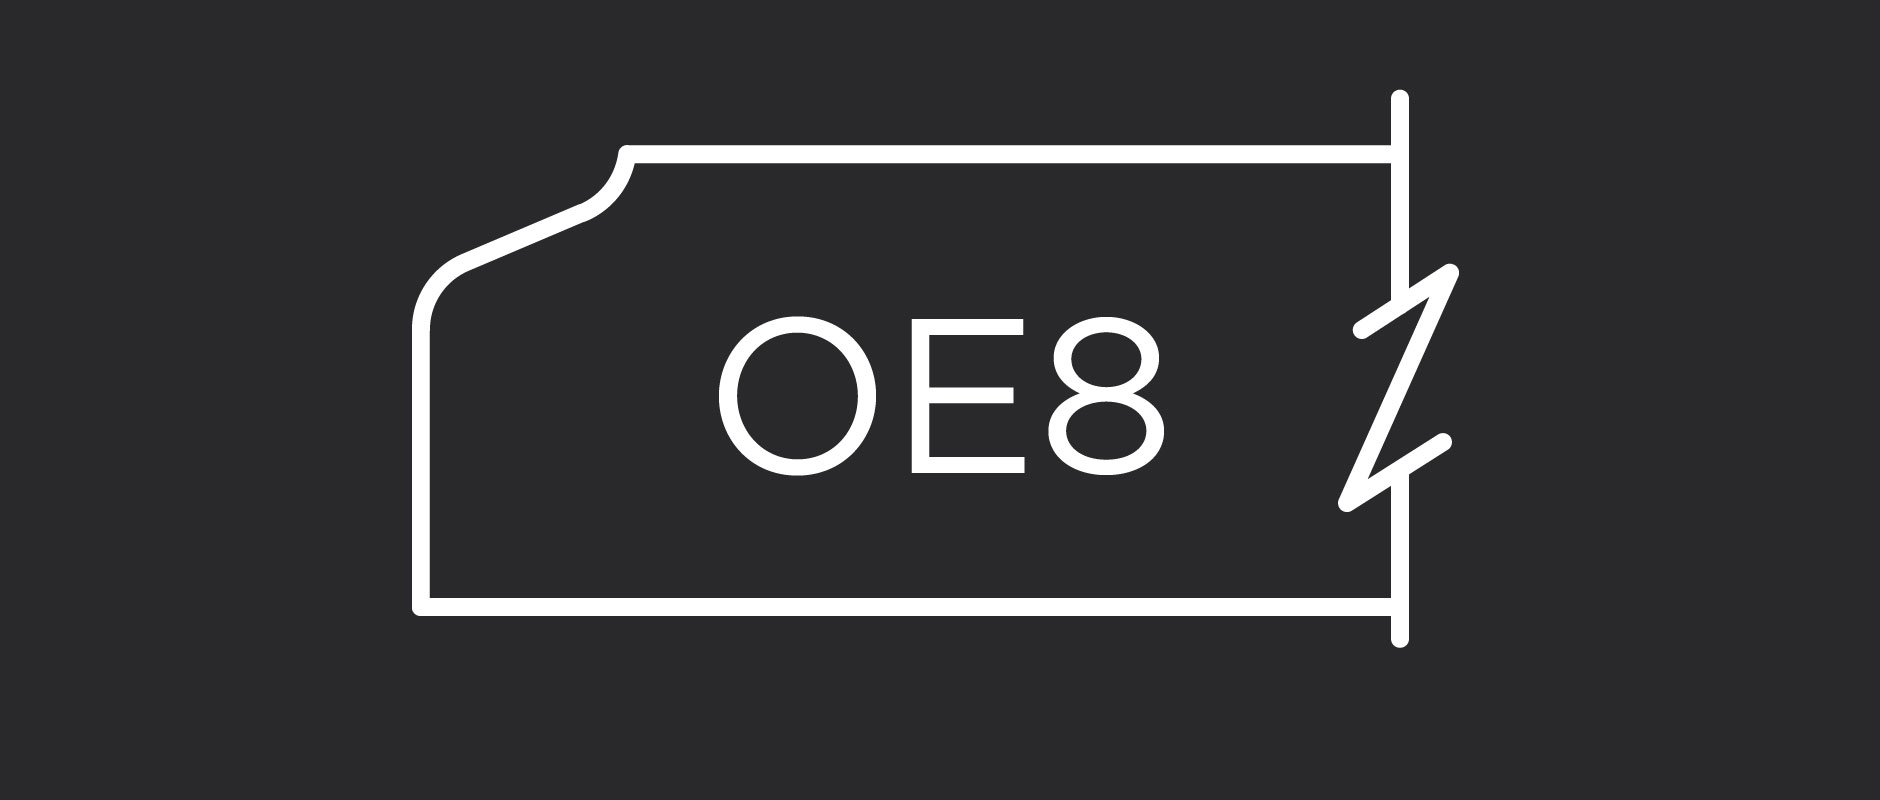 OE8 outside edge profile